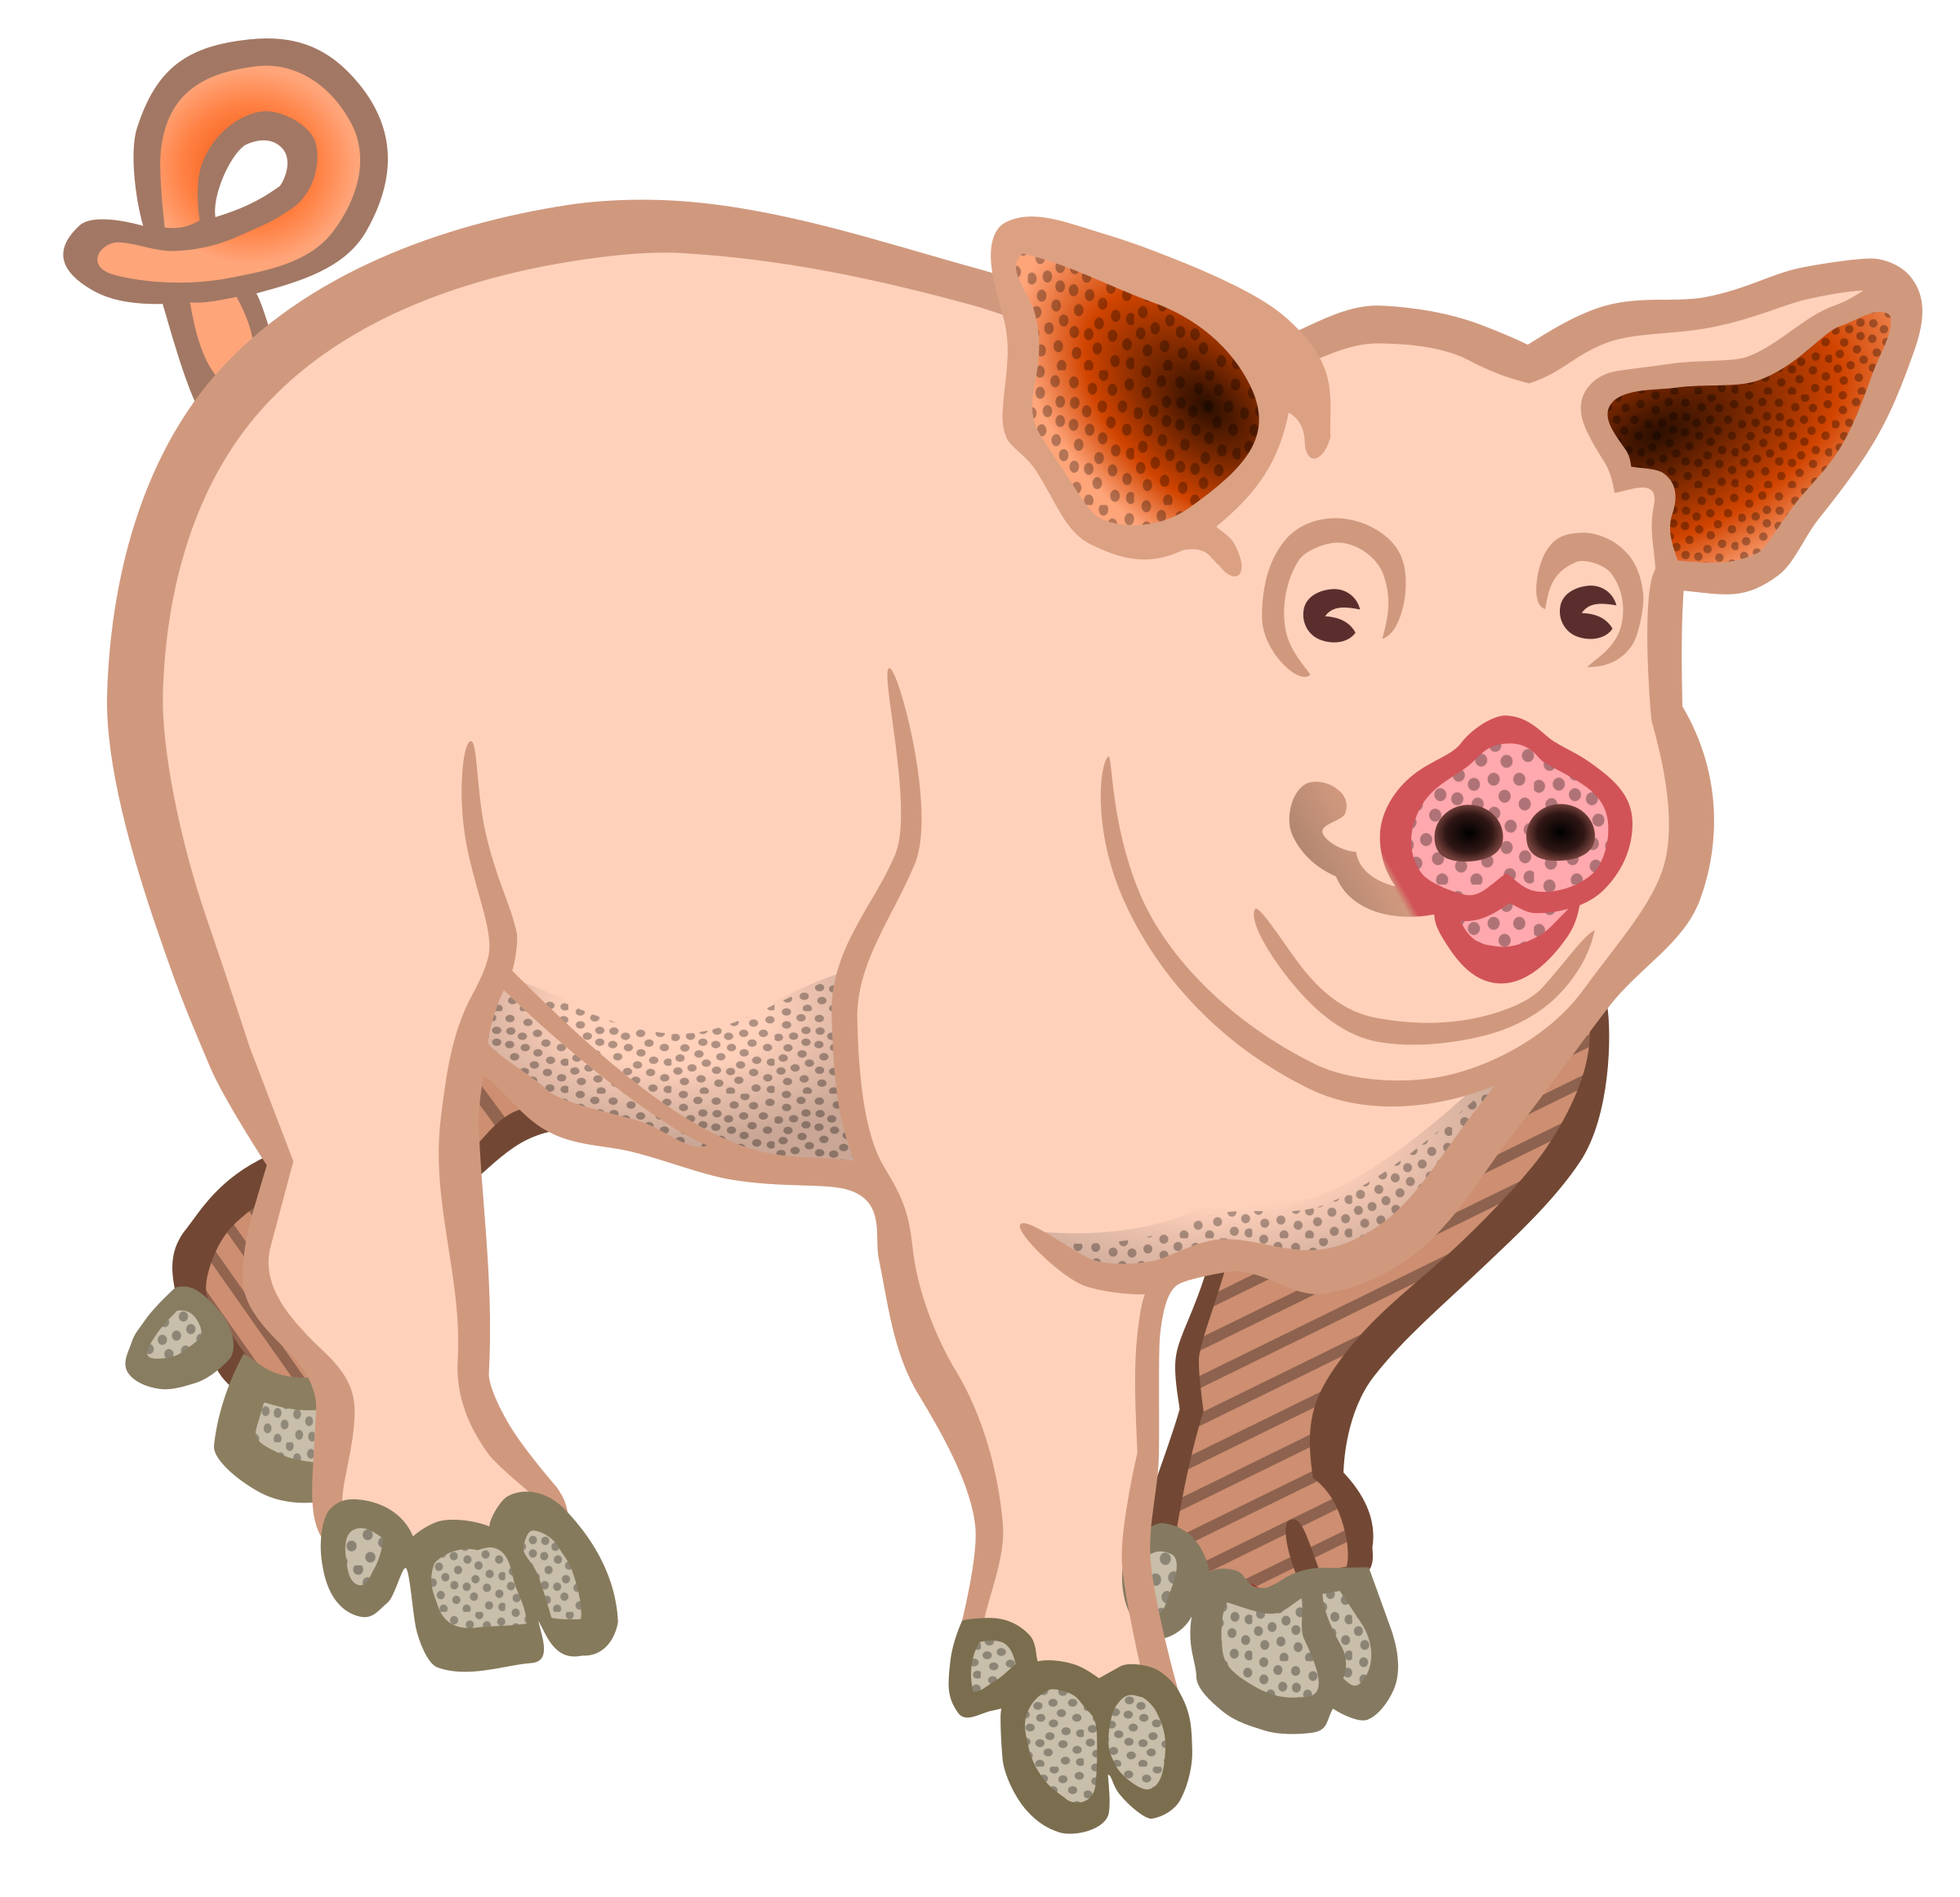 Pig Cliparts For Free Clipart Farm Animal And Use In Png.